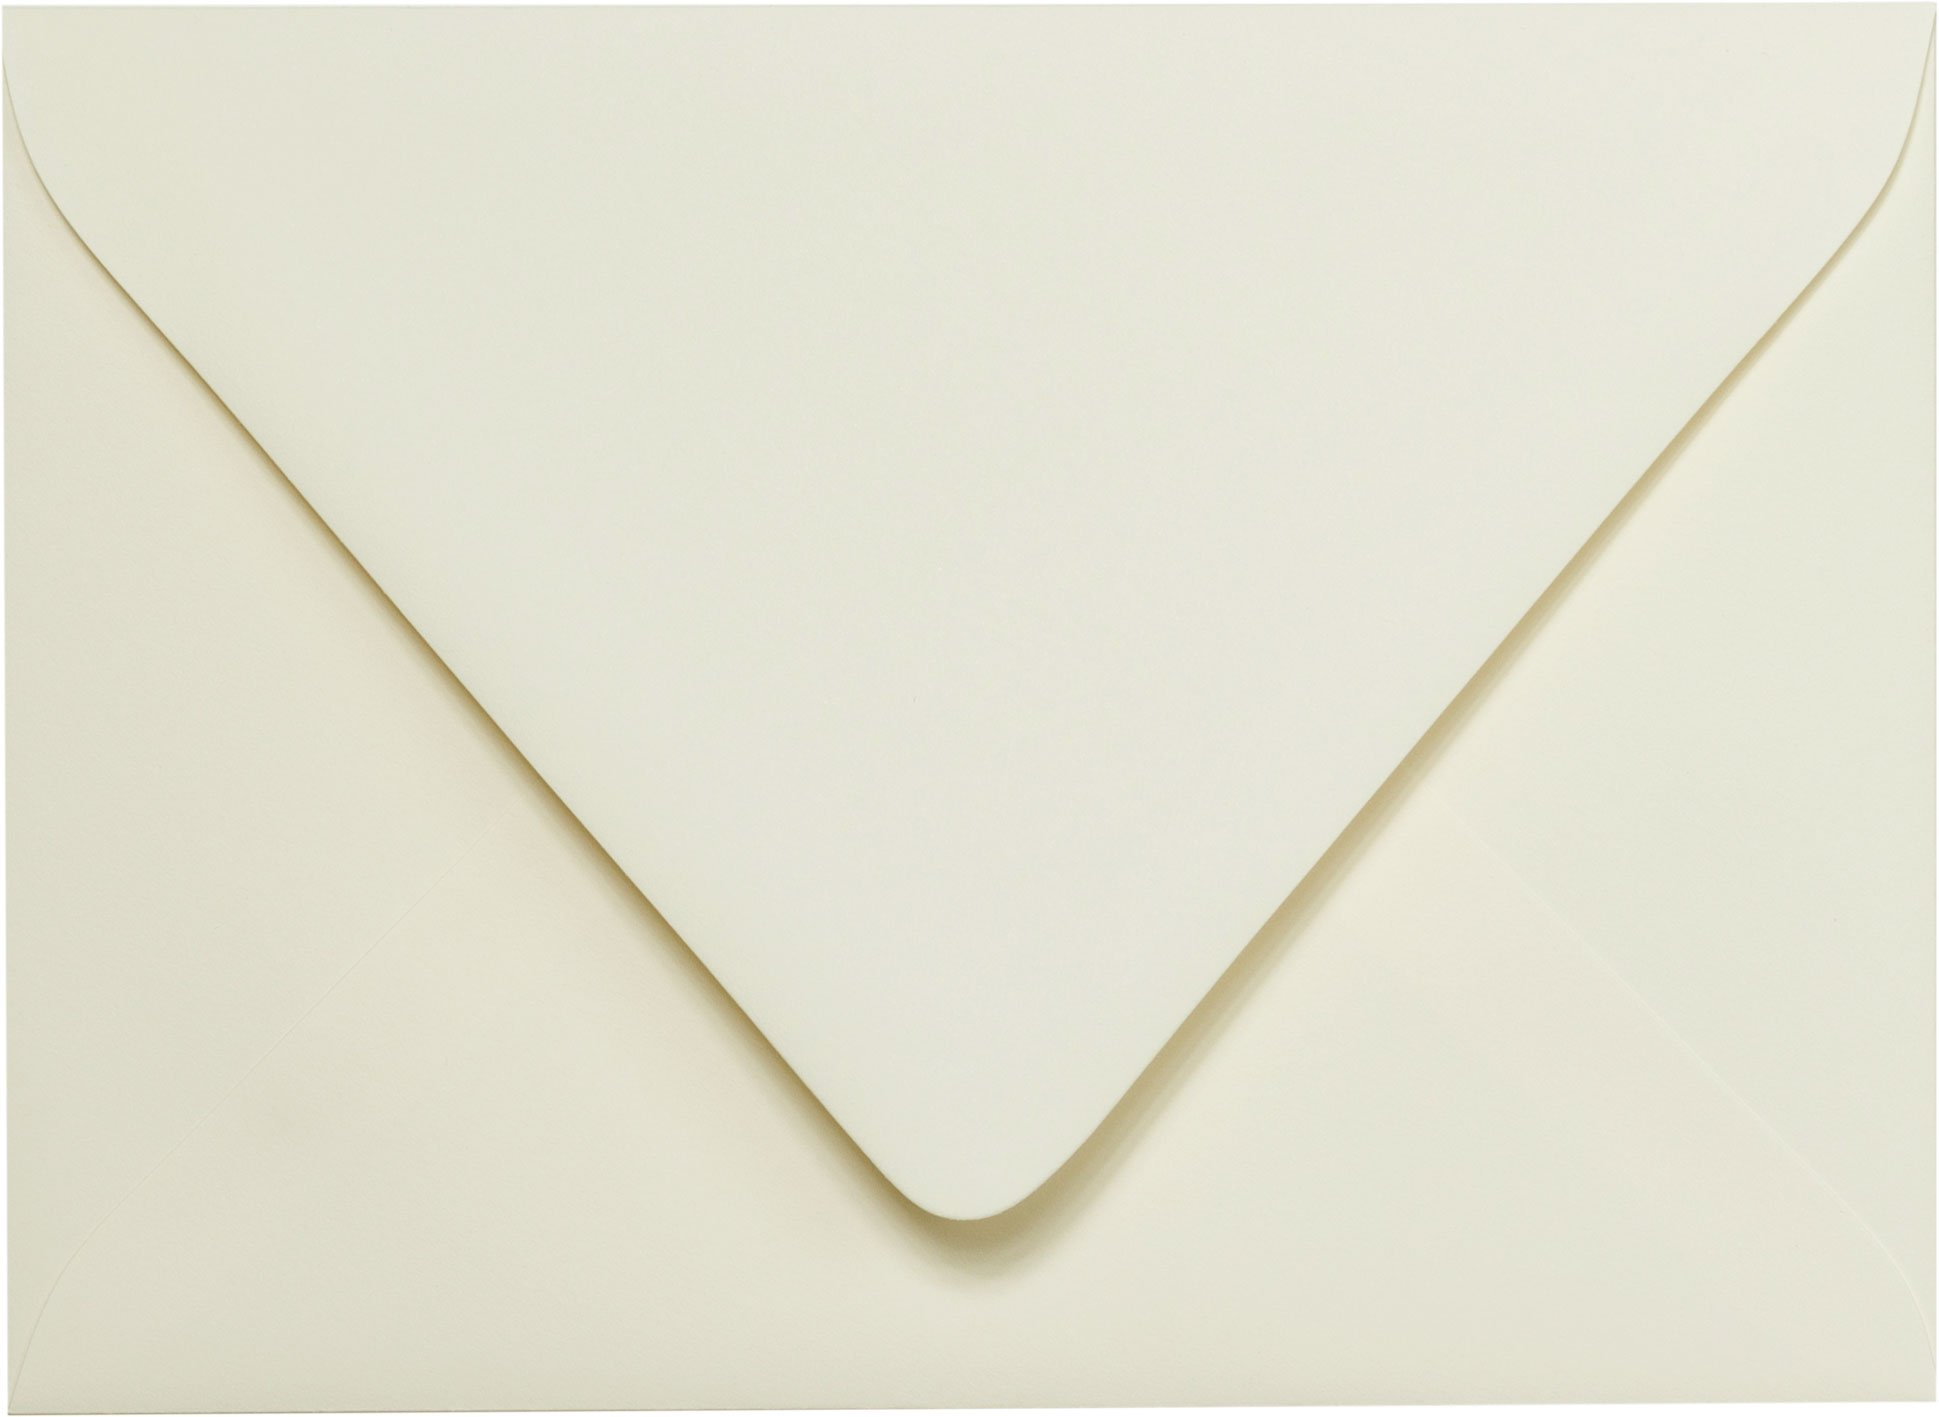 A-2 Classic Natural Cream Solid Euro Flap RSVP Envelopes (4 3/8'' x 5 3/4'') - 50 Envelopes from Paper and More